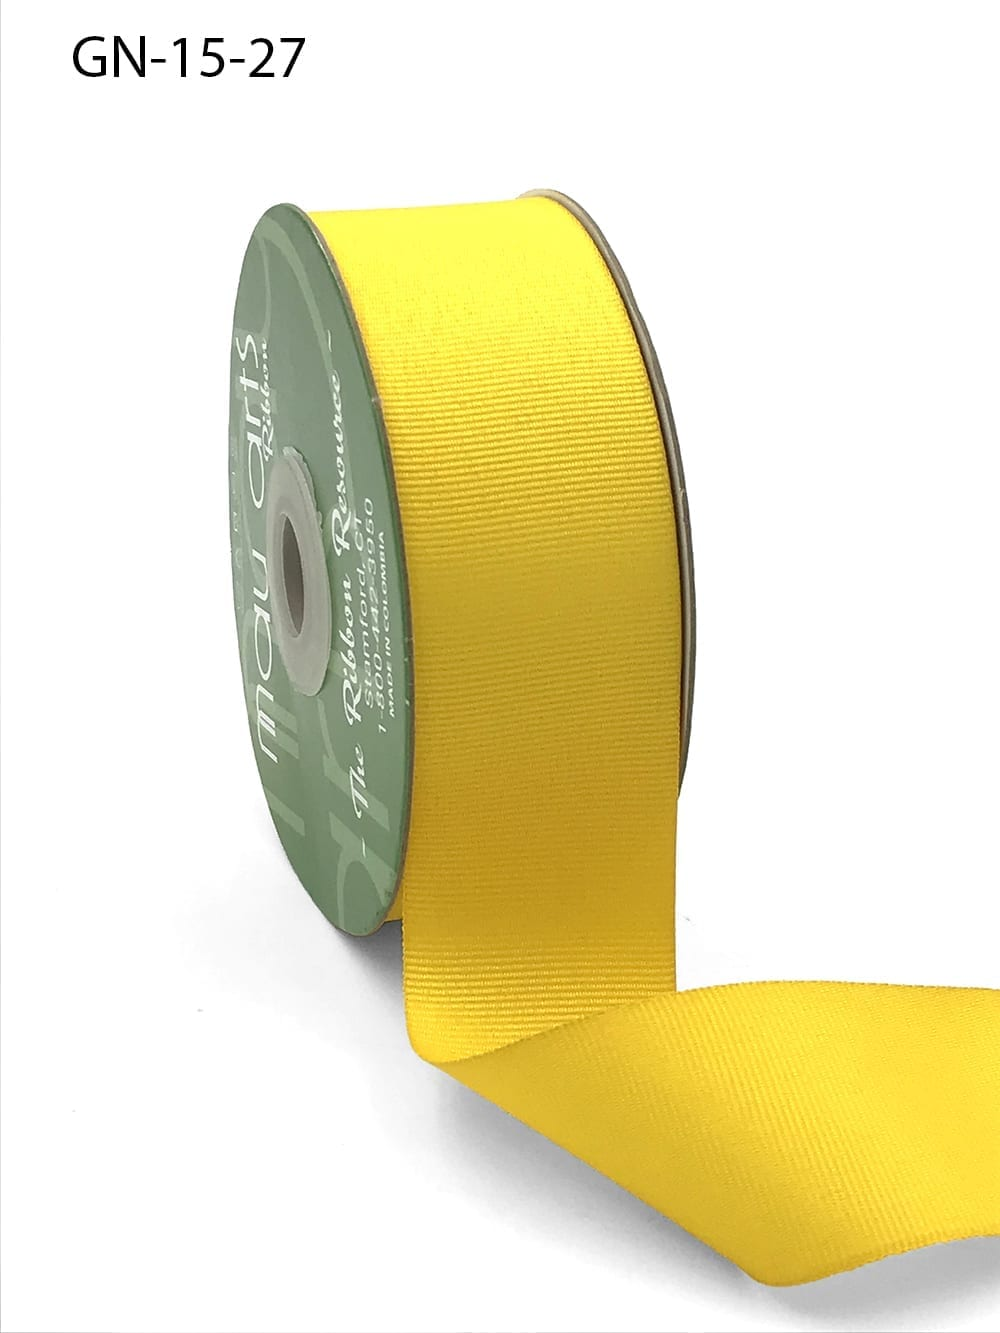 1.5 Inch Light-Weight Flat Grosgrain Ribbon with Woven Edge - GN-15-27 Yellow